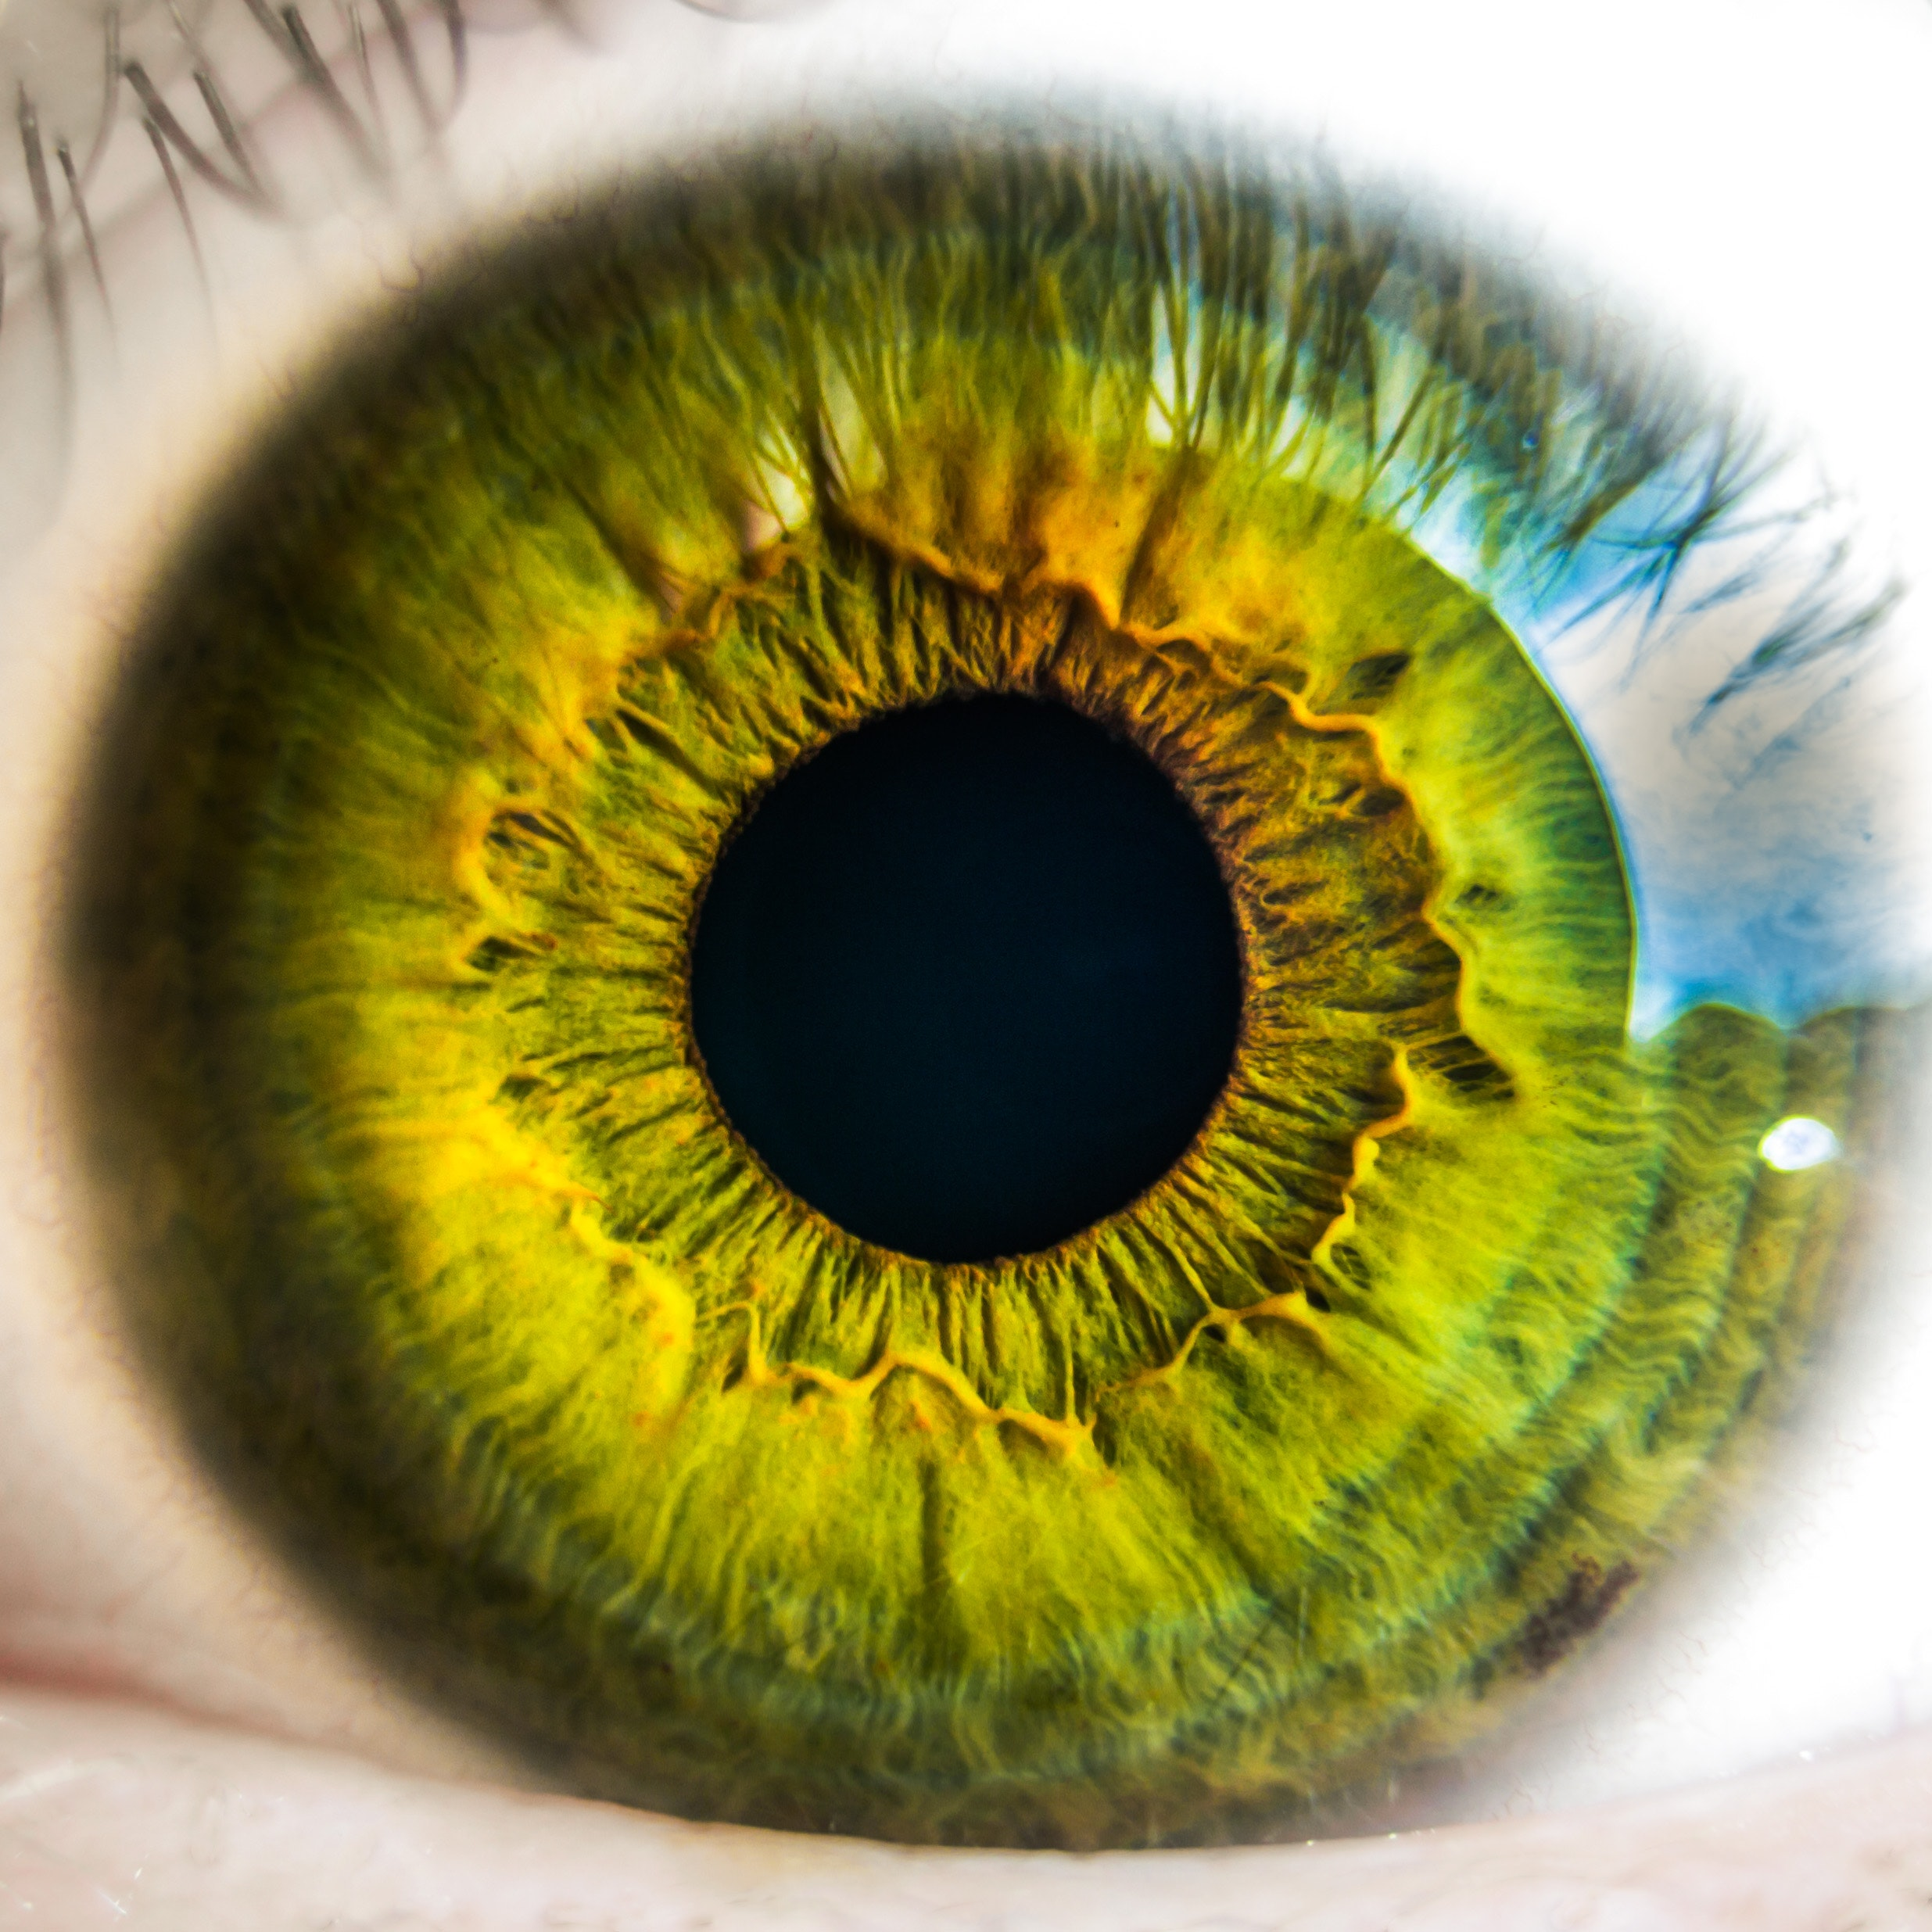 Eye Health Calculator: what is the outlook for your vision?